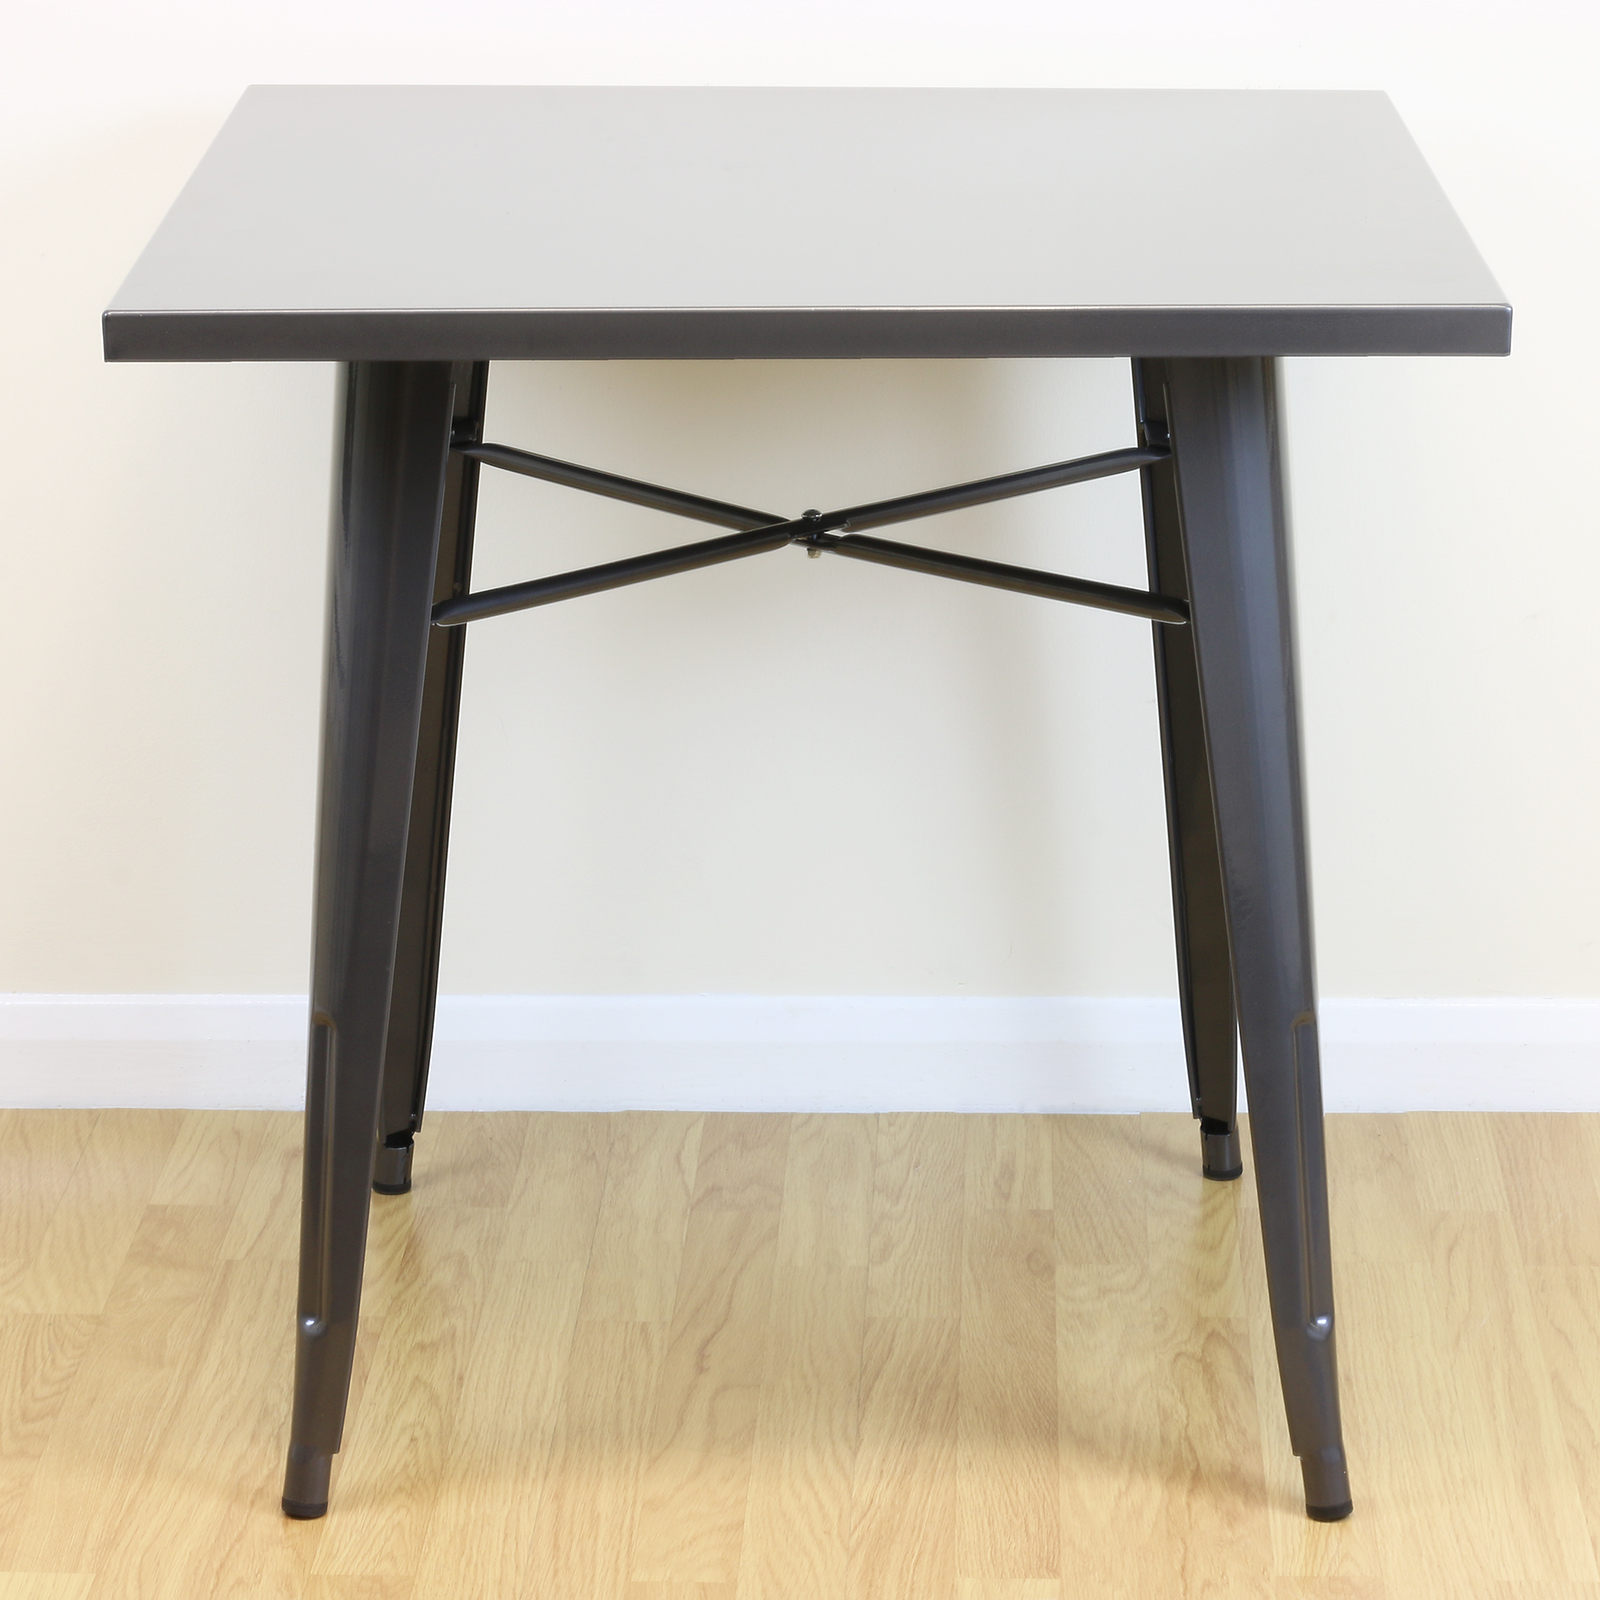 Square gunmetal kitchen dining cafe metal table 2 4 seater for Square industrial dining table